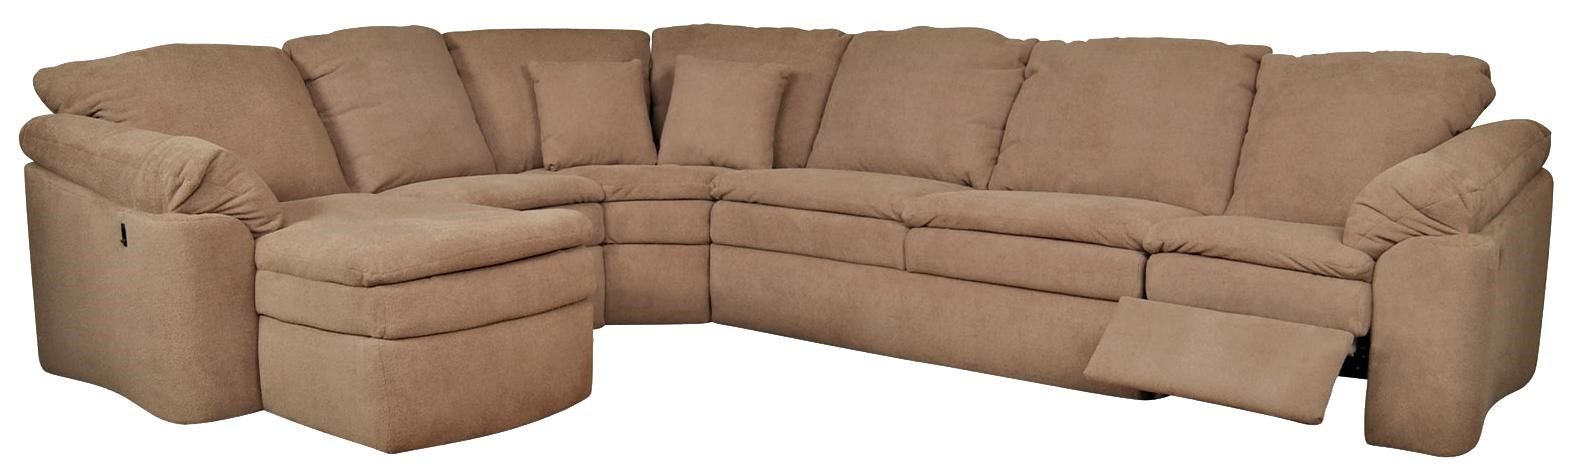 England Seneca Falls Six Seat Sectional Sofa With Attached Chaise Component Howell Furniture Reclining Sectional Sofas